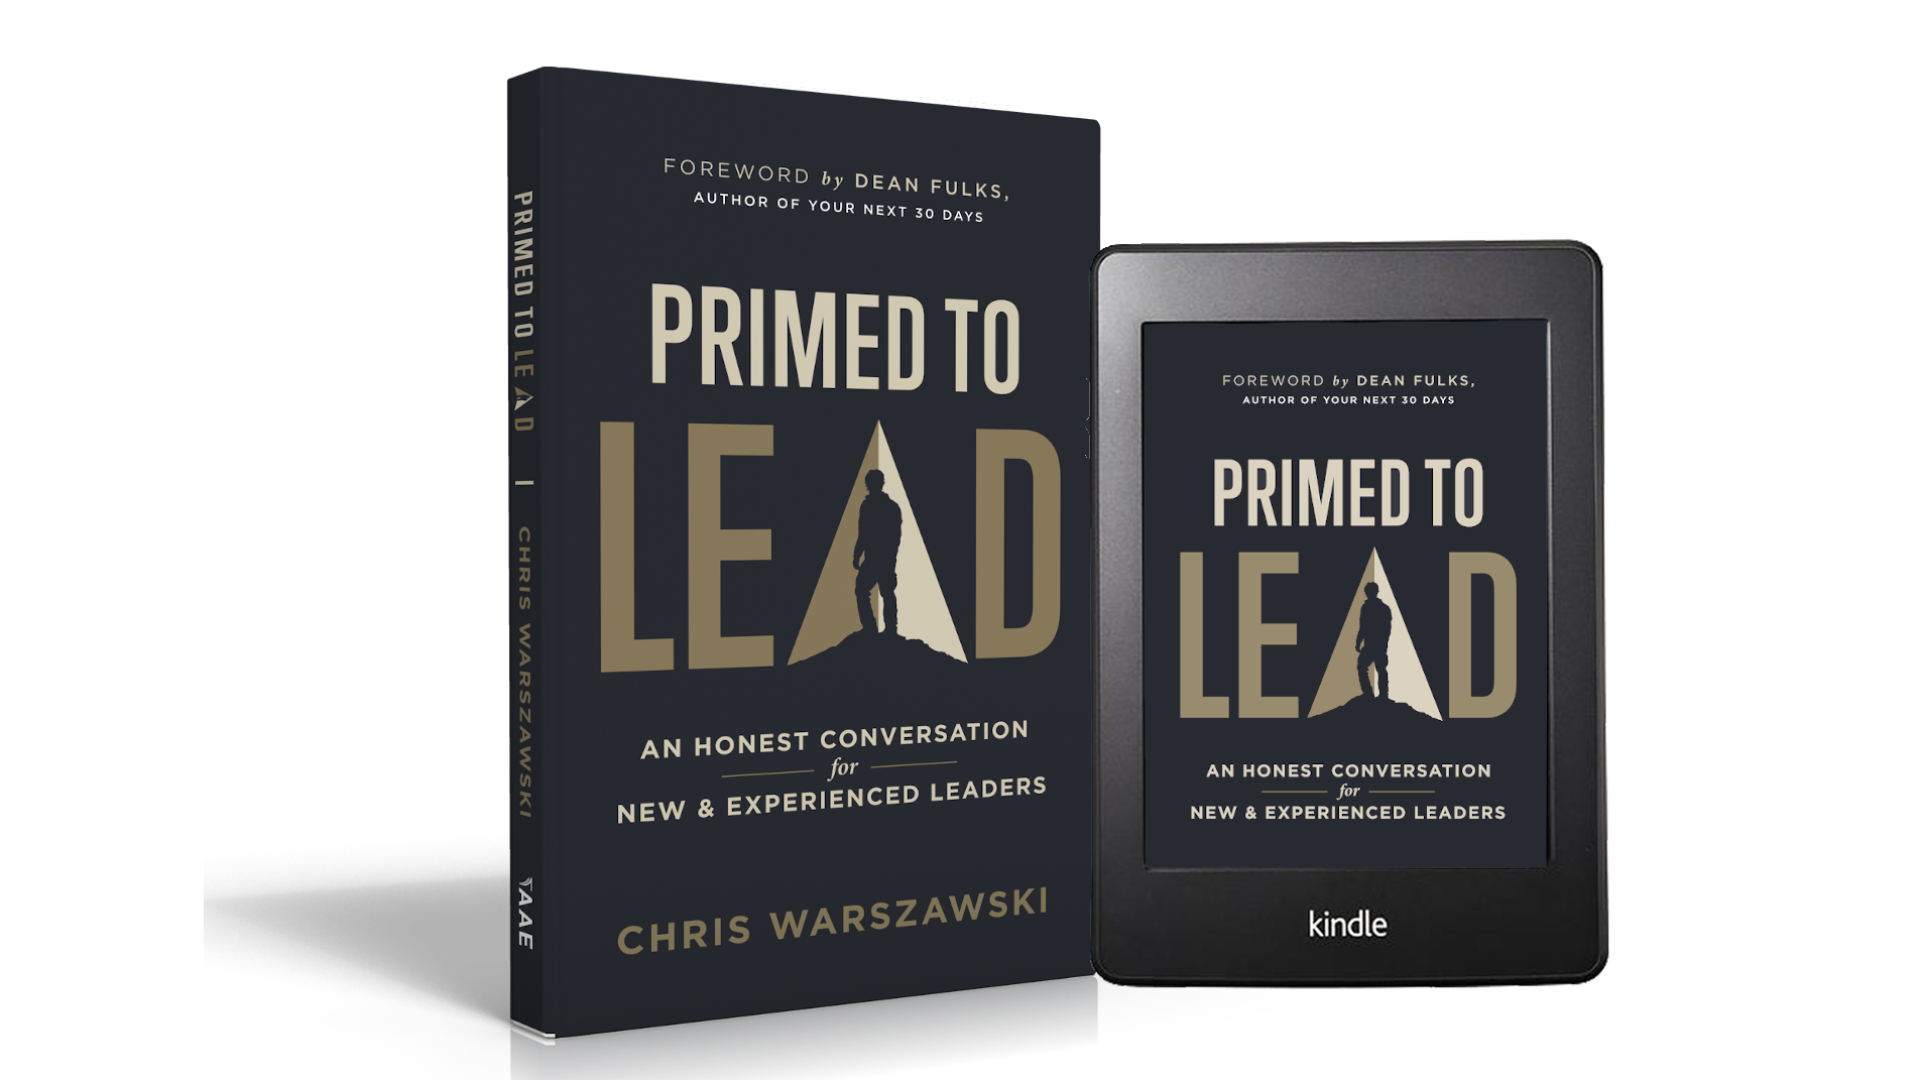 So You Want to Lead?